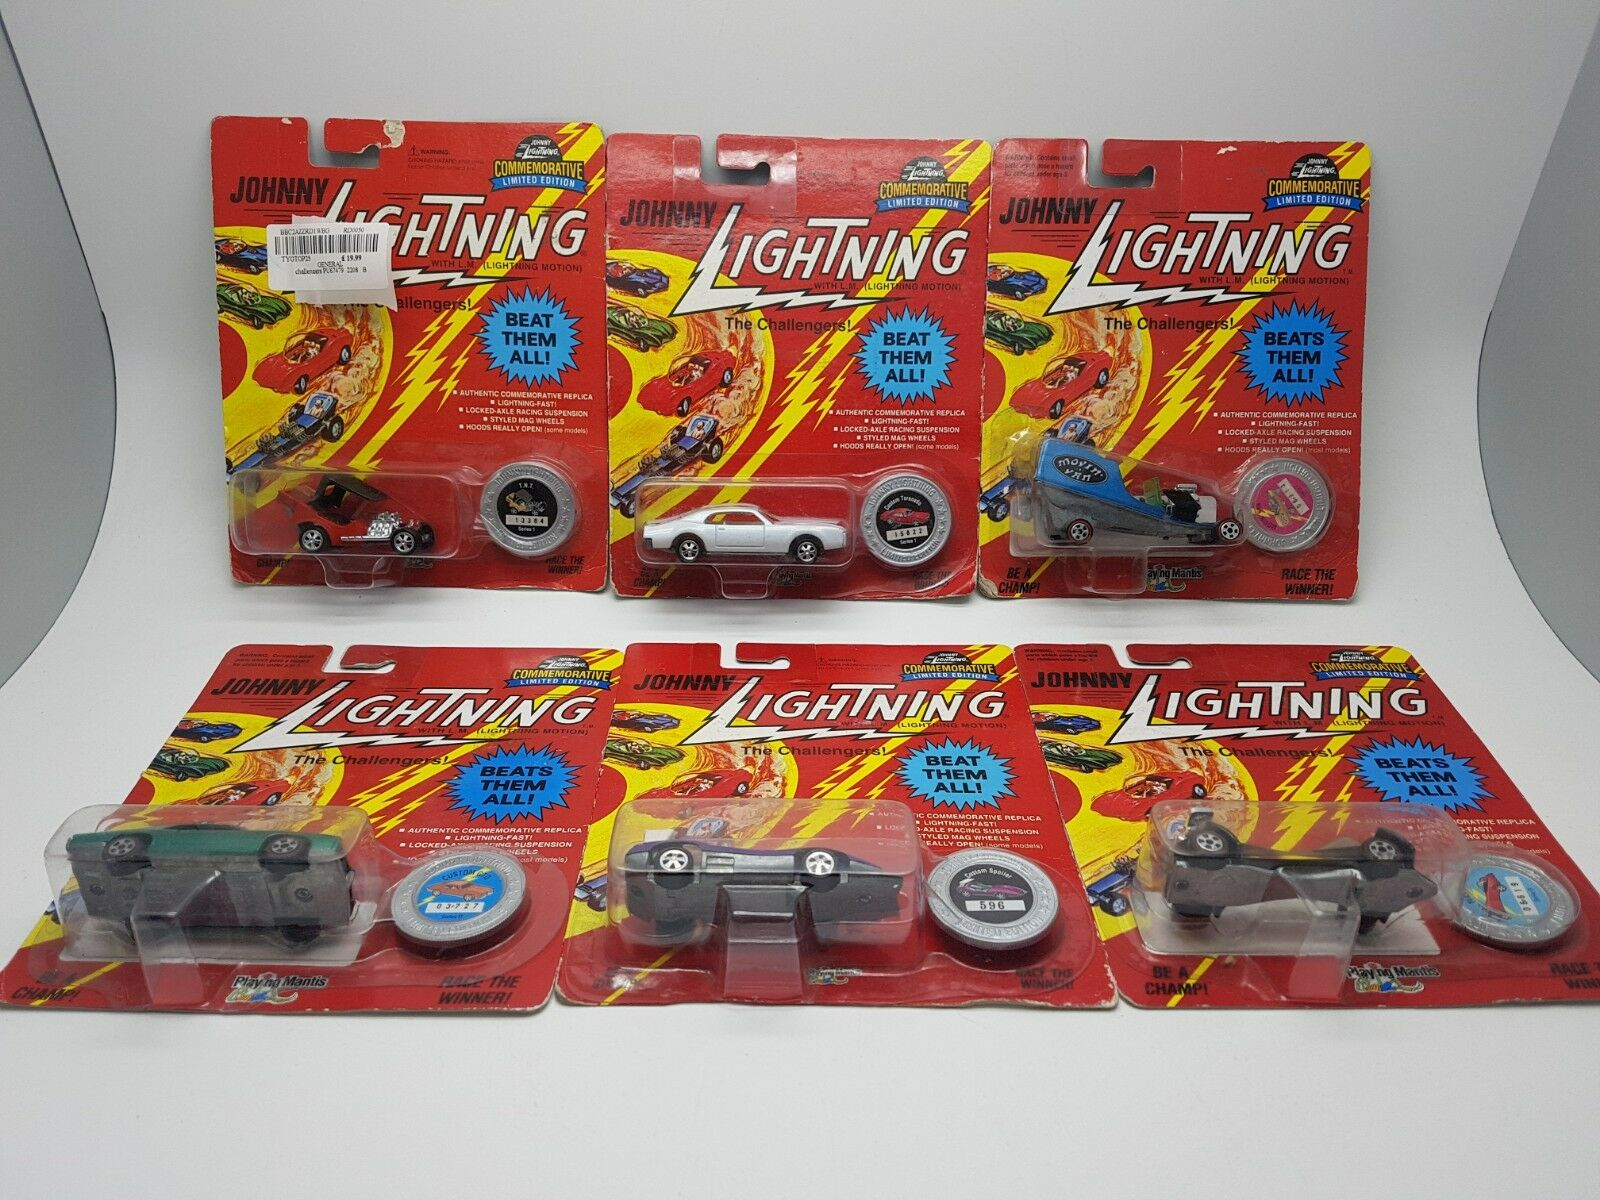 6 x Johnny Lightning - The Challengers Limited Edition lot